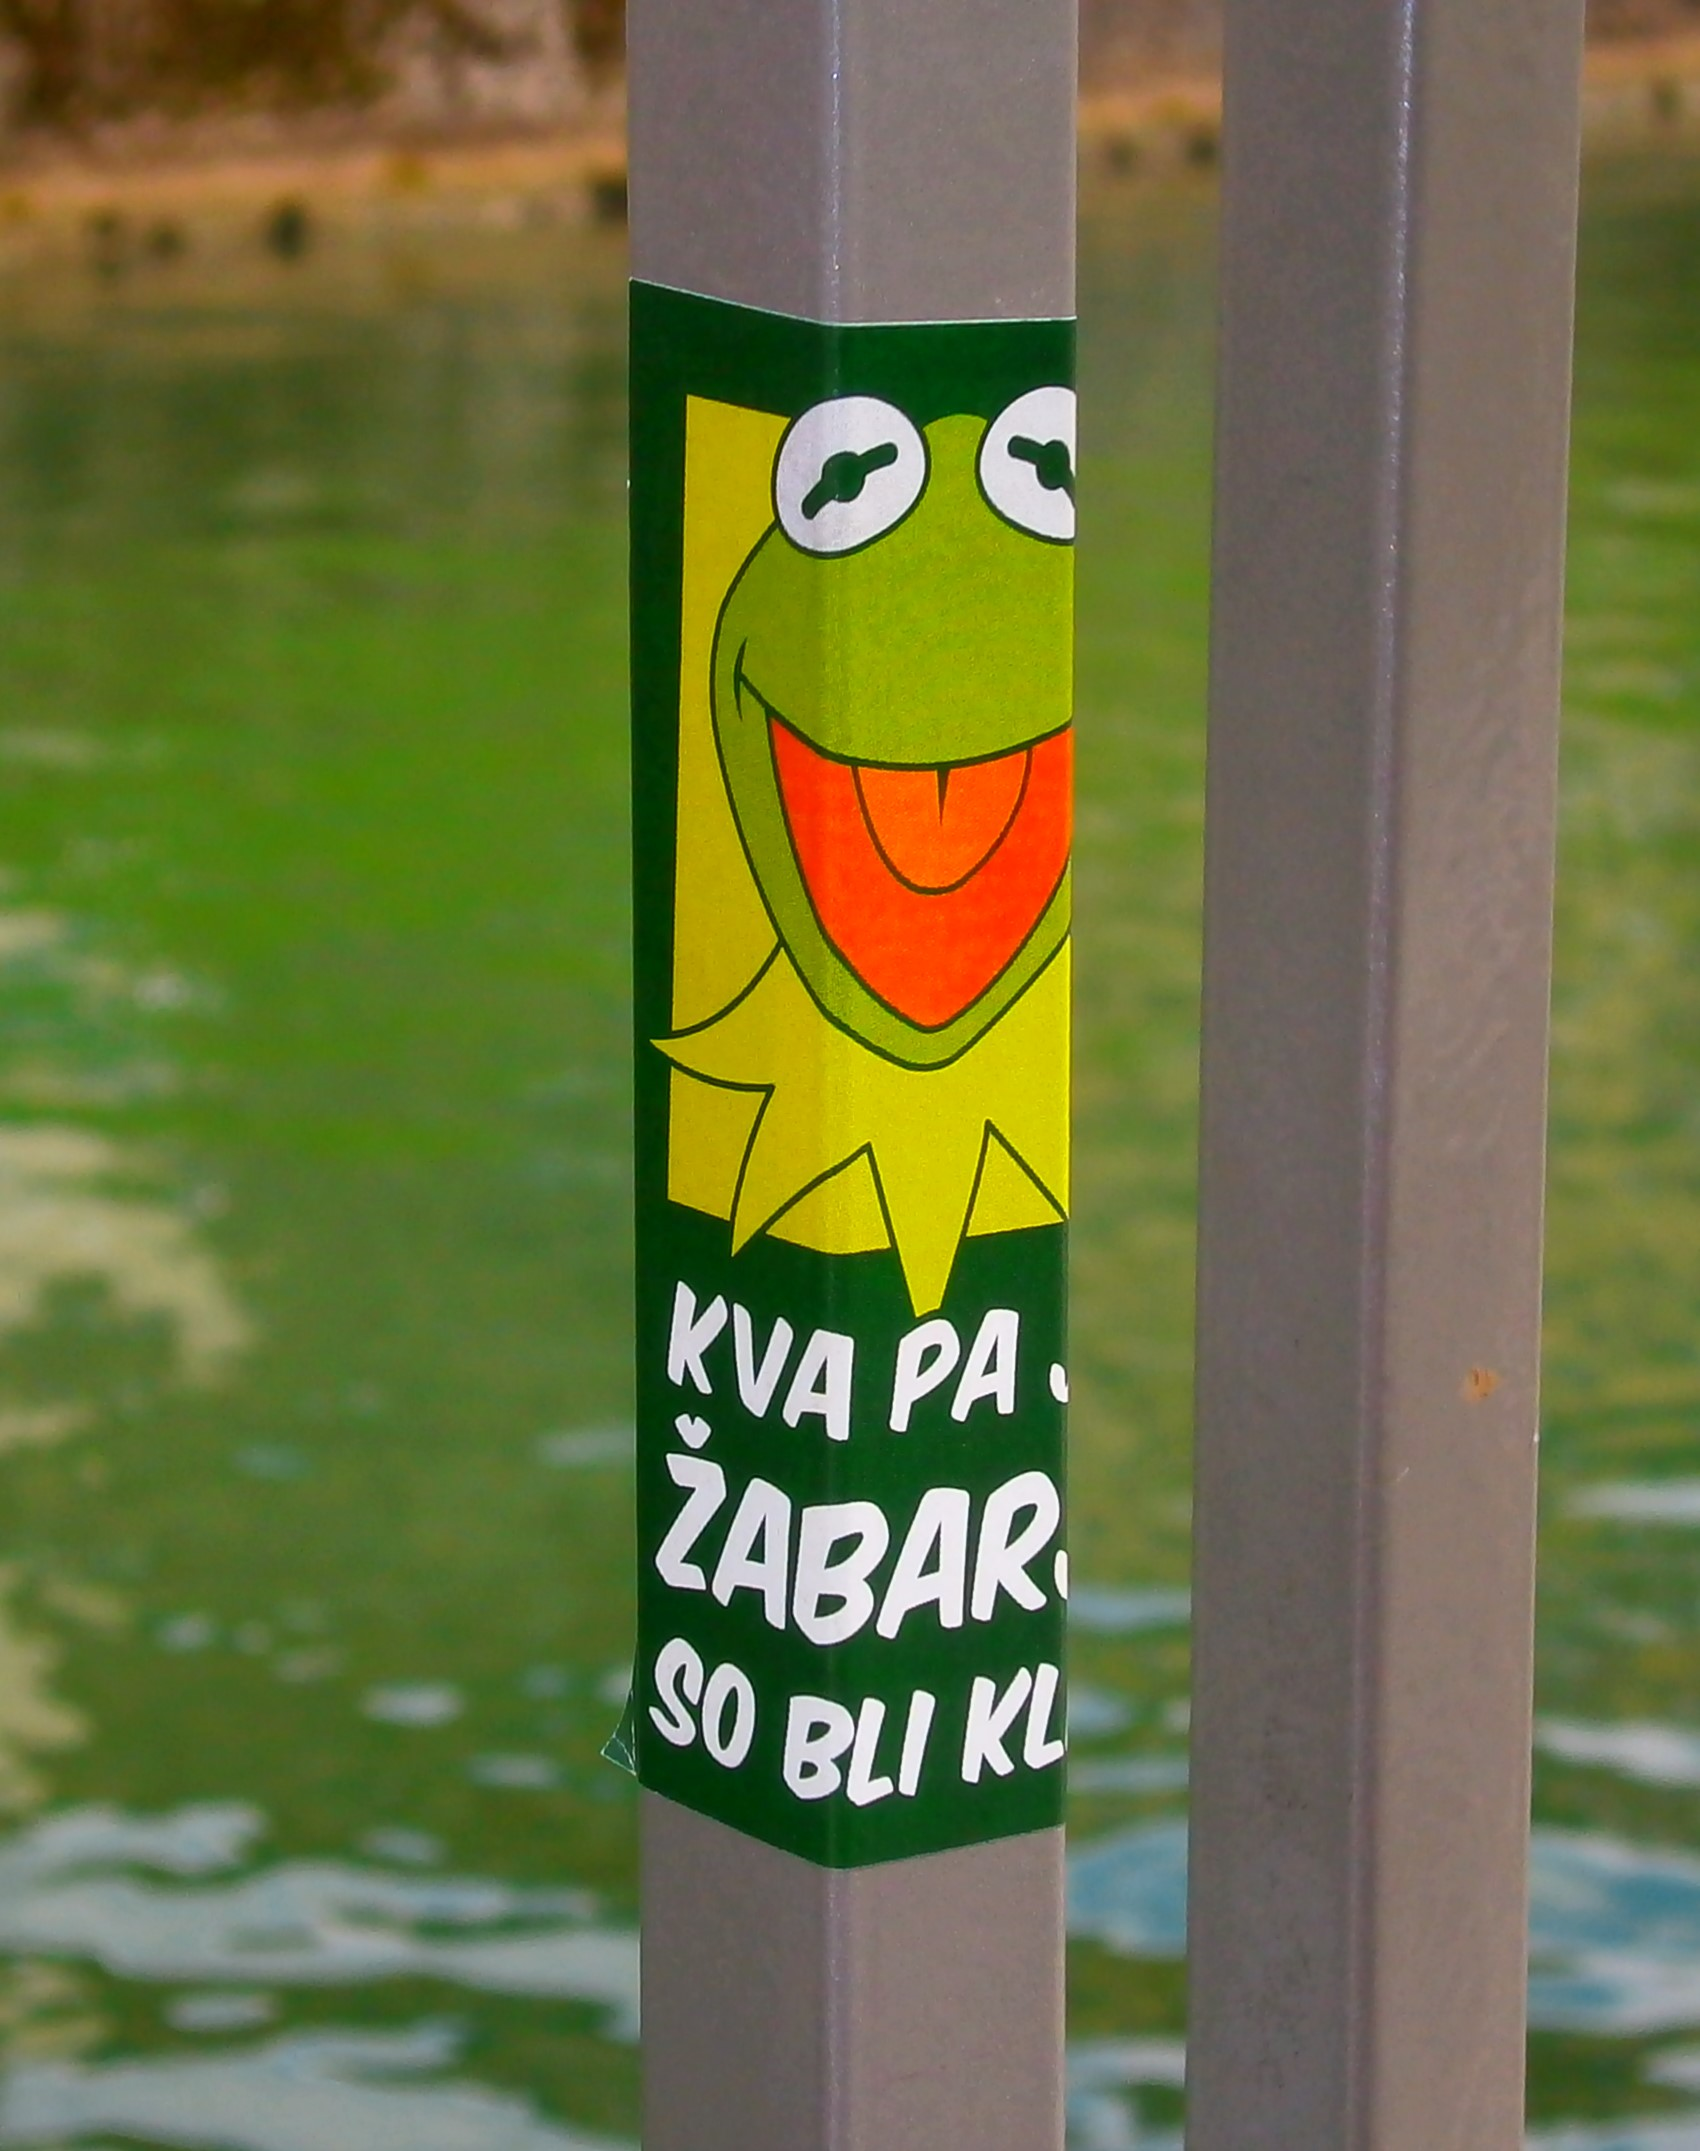 """Kva pa je, žabarji so bli kle!"" (What is it? Frog people were here!)"